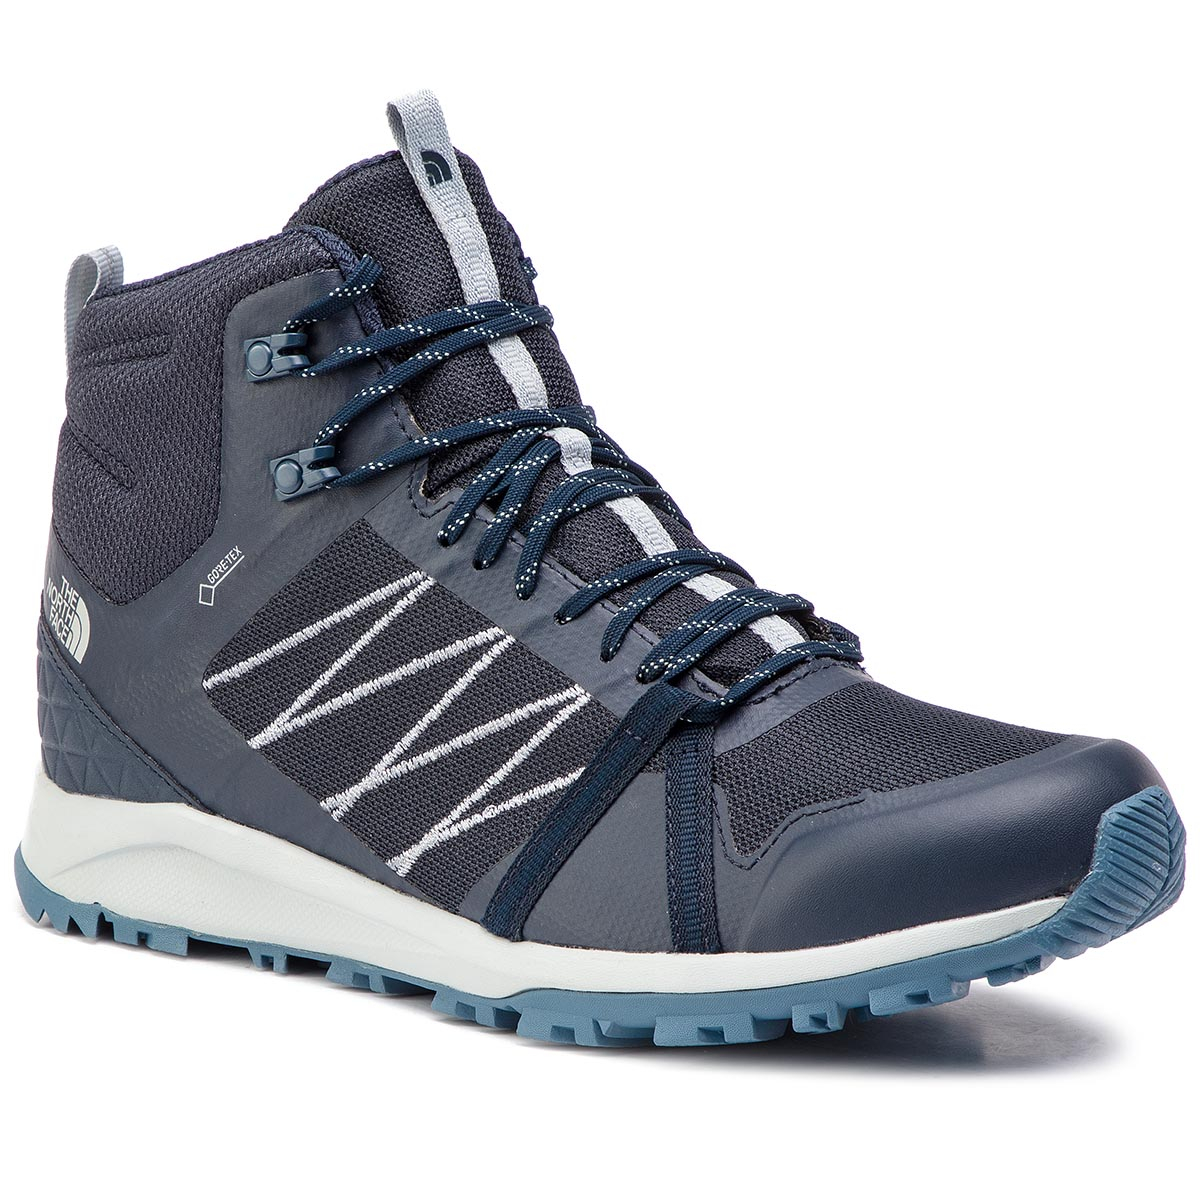 Trekkings THE NORTH FACE - Litewave Fastpack II Mid Gtx GORE-TEX Urban Navy/High Rise Grey